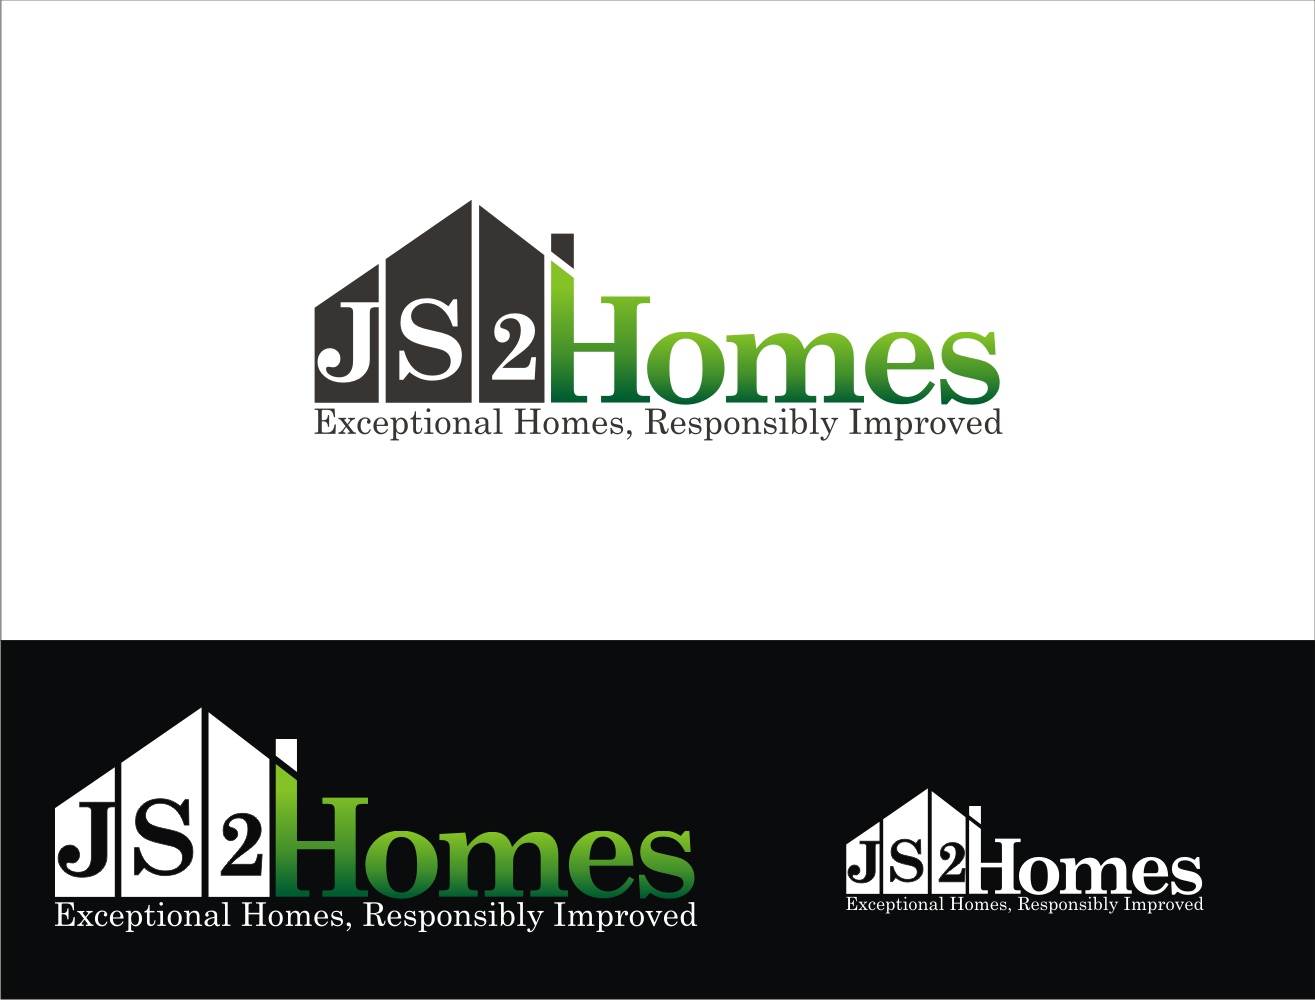 New logo wanted for JS2 Homes